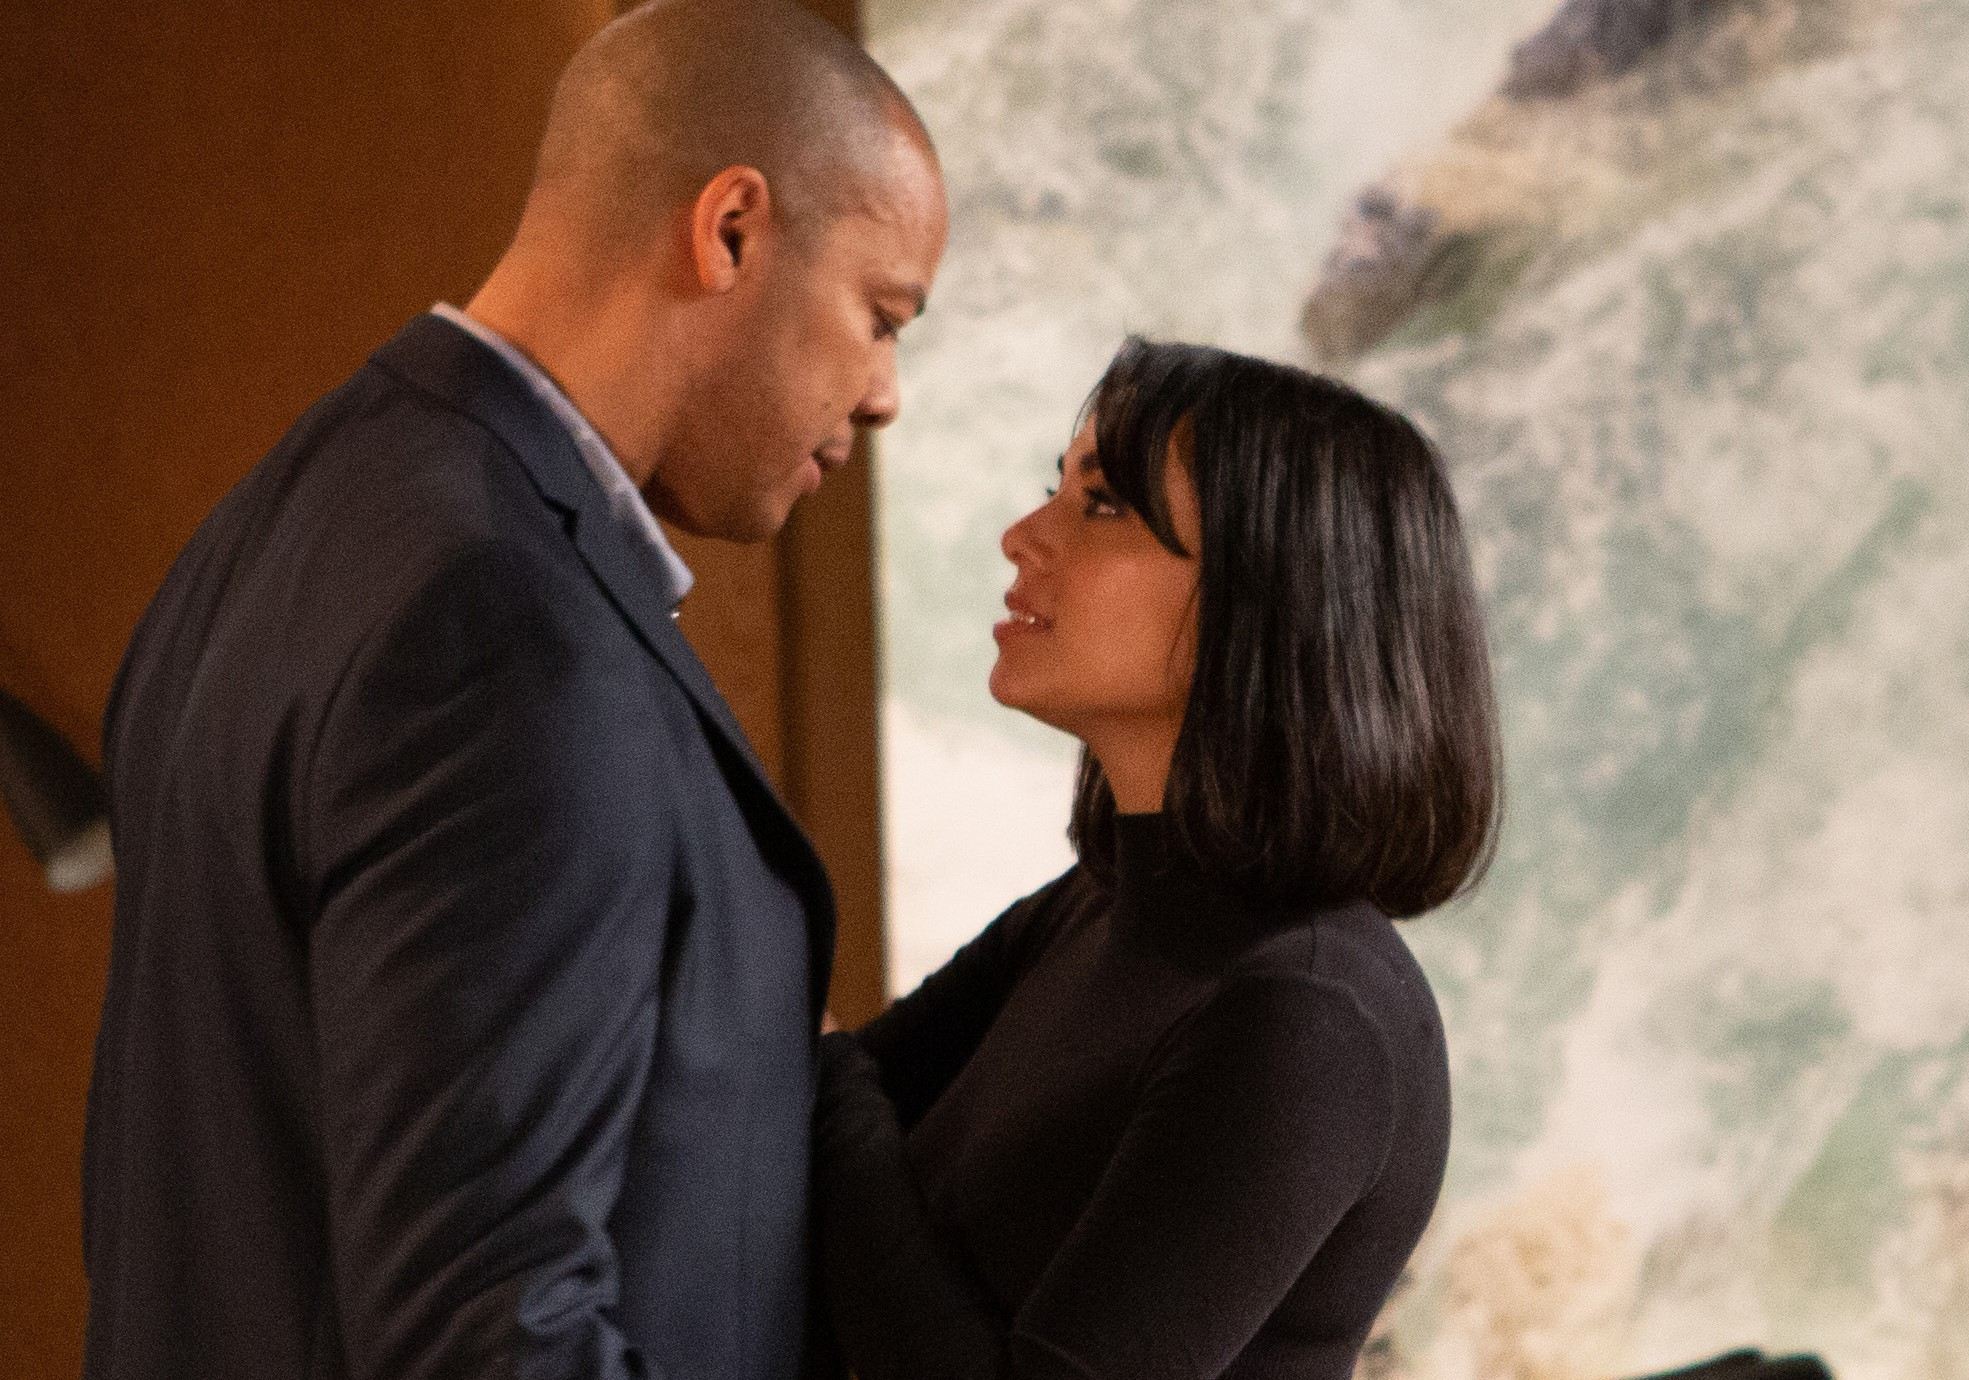 Emmerdale SPOILERS: Things get steamy between Al and Priya